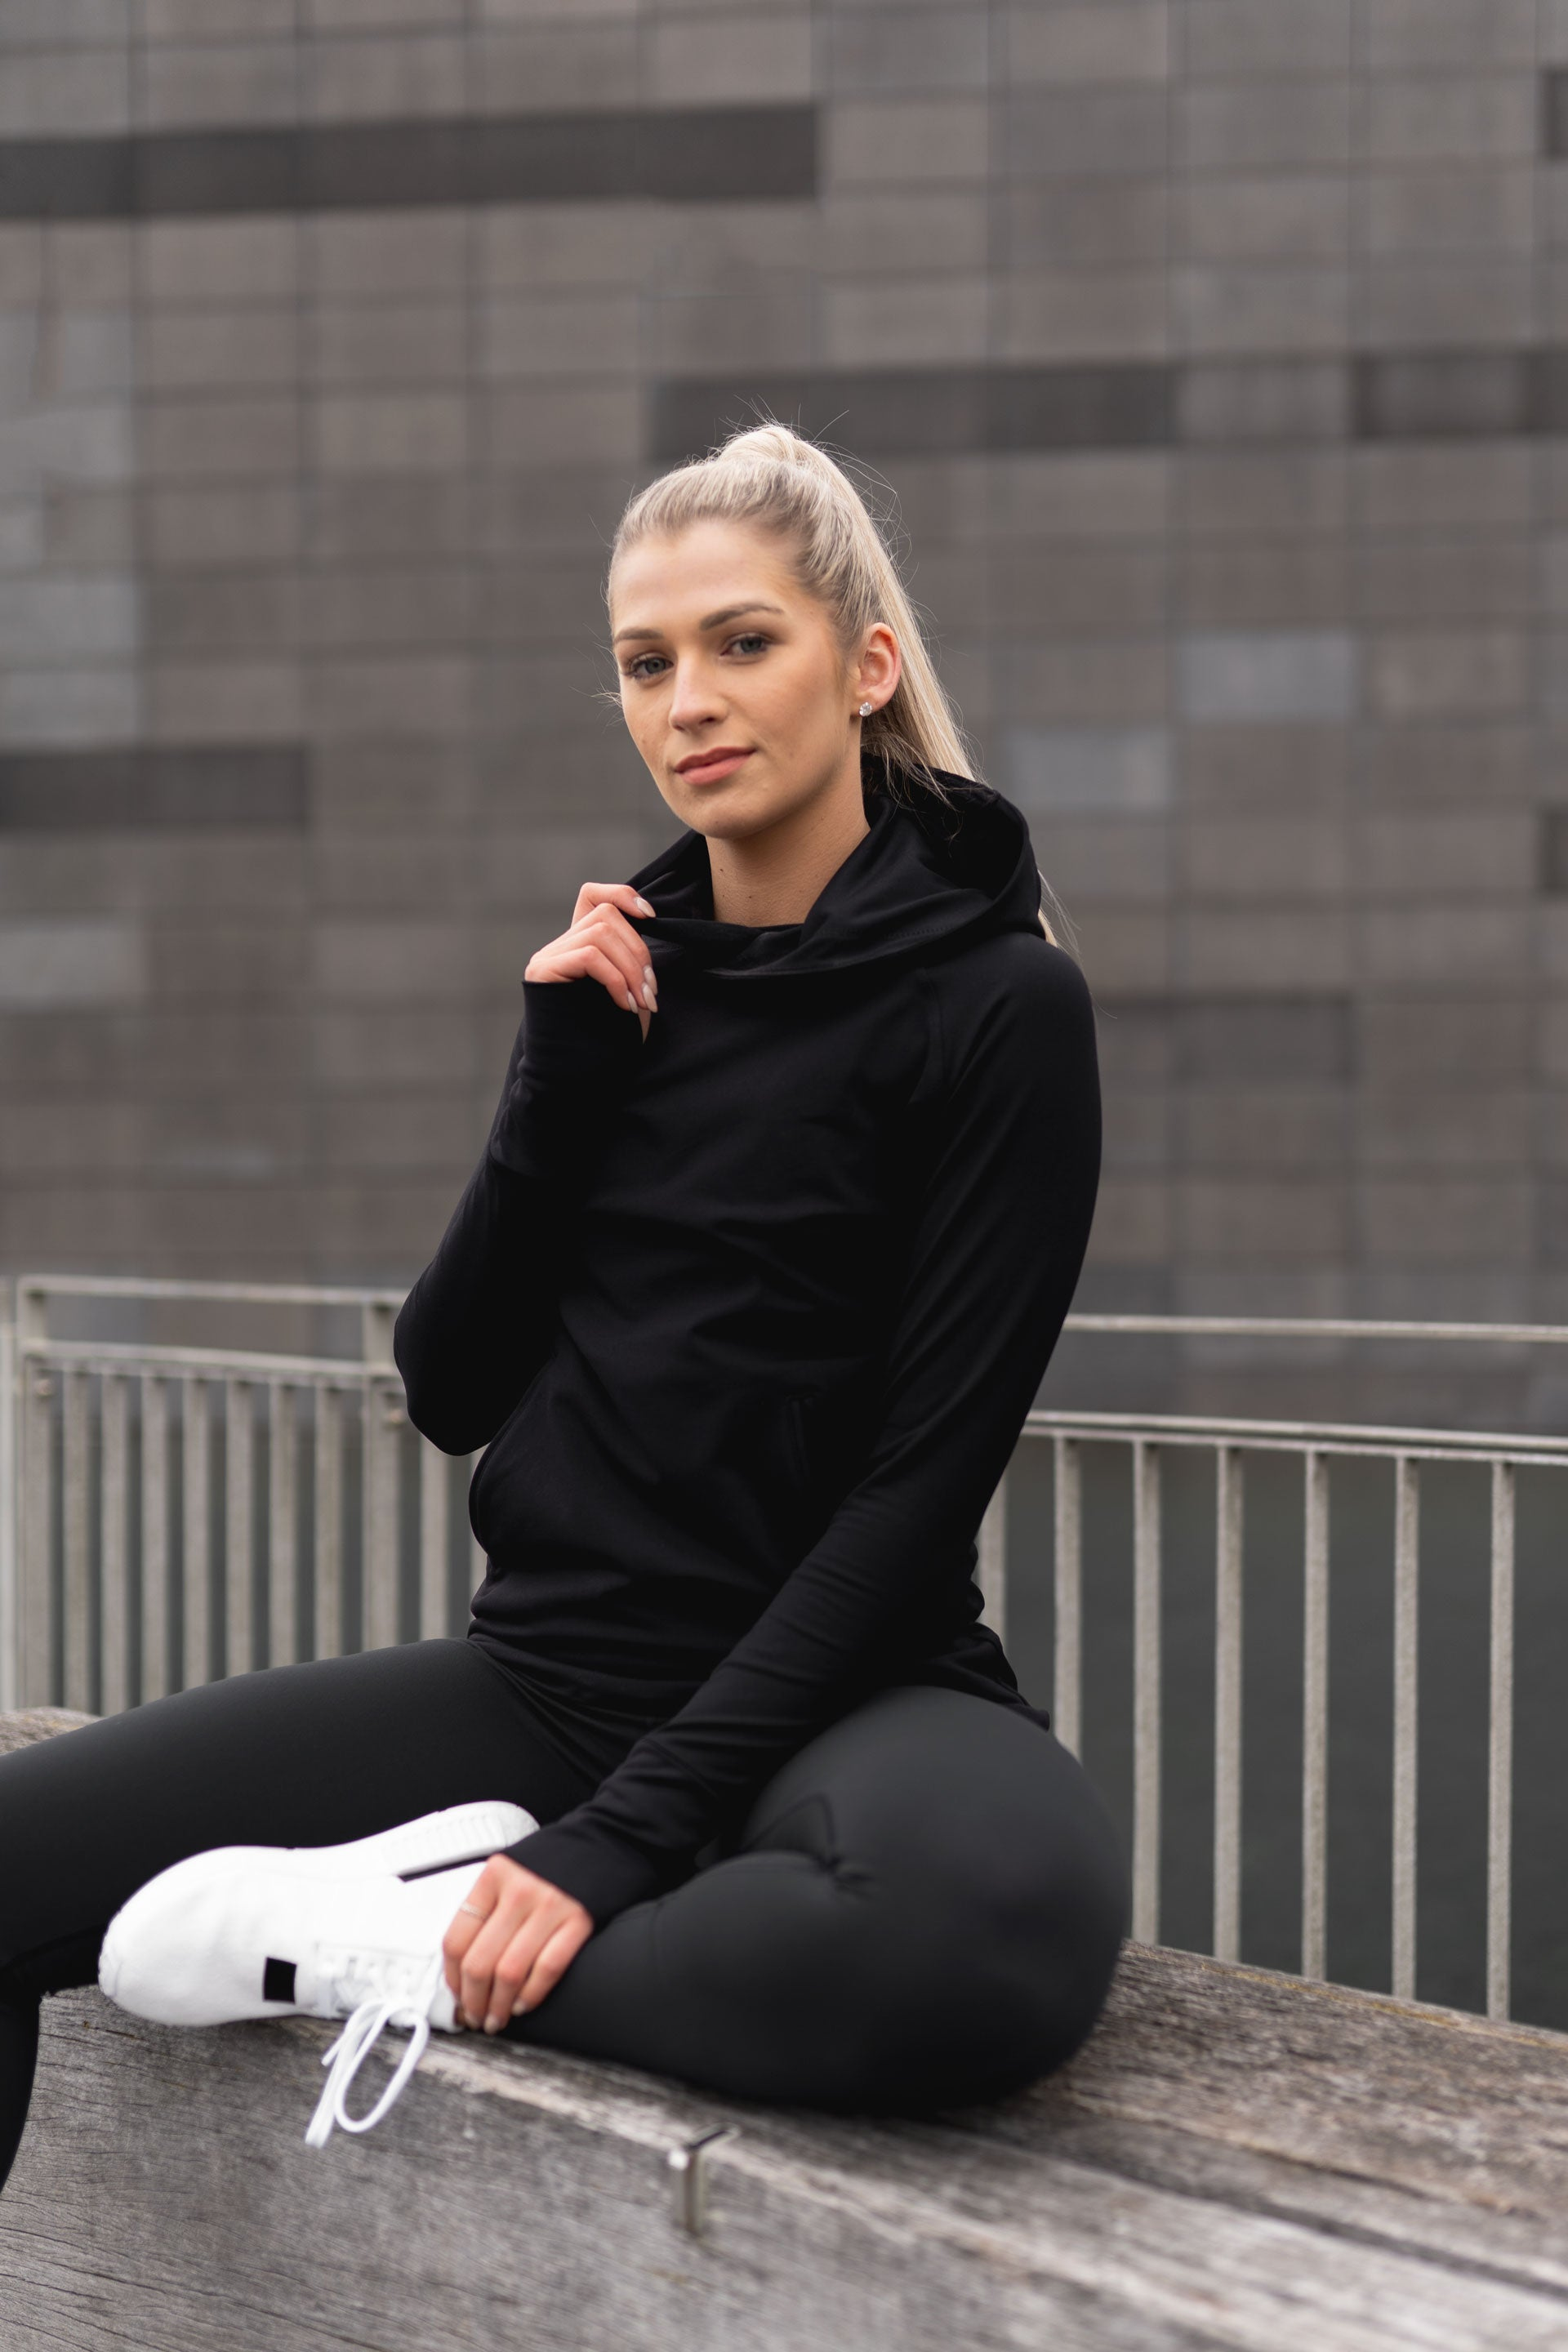 TECH STRETCH ACTIVE HOODIE 2.0 - ( SIZES: XS, S, M )